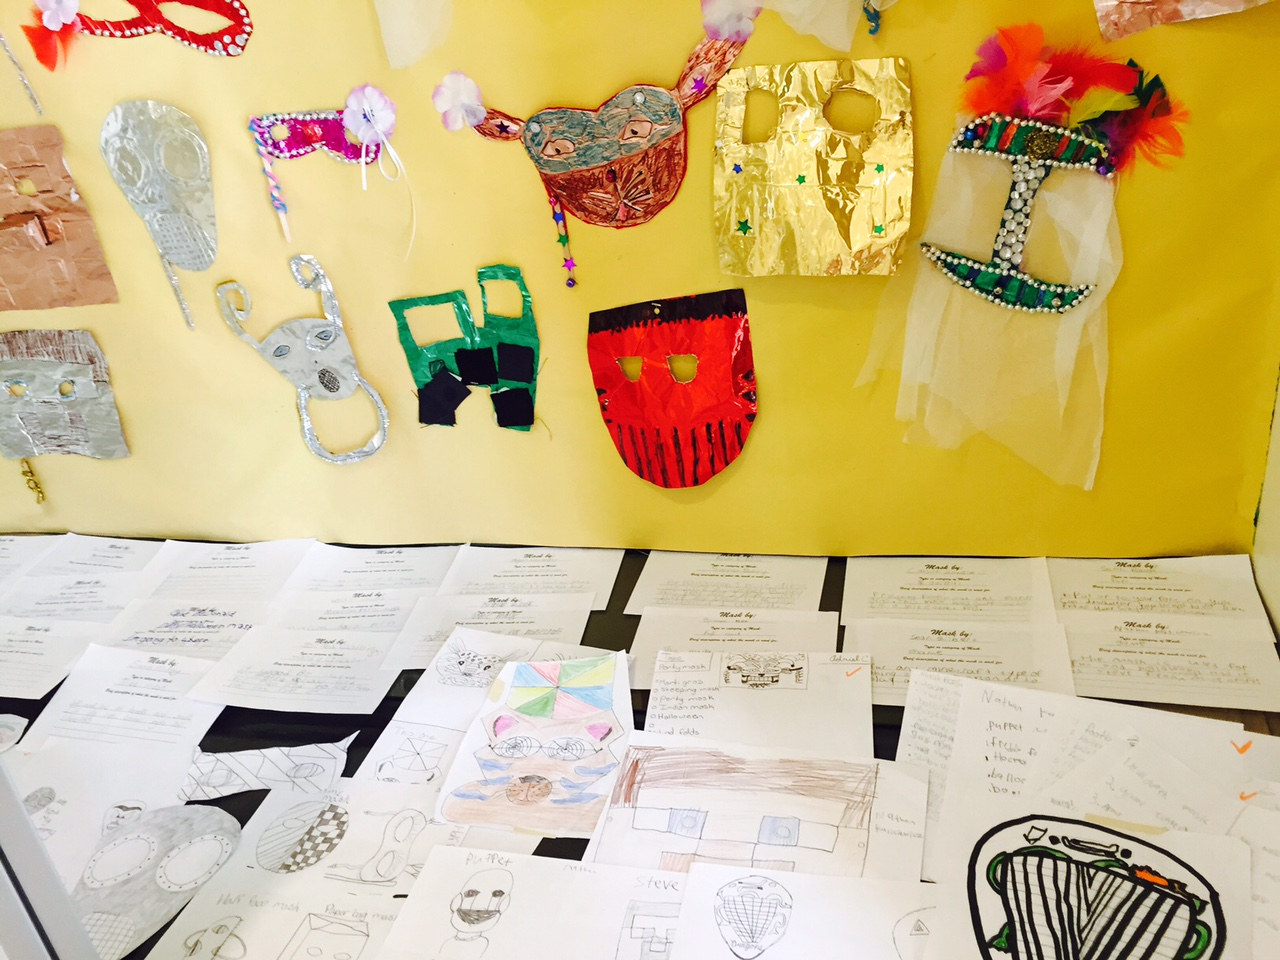 Sixth Grade Mask display showing mask categories and rough drafts